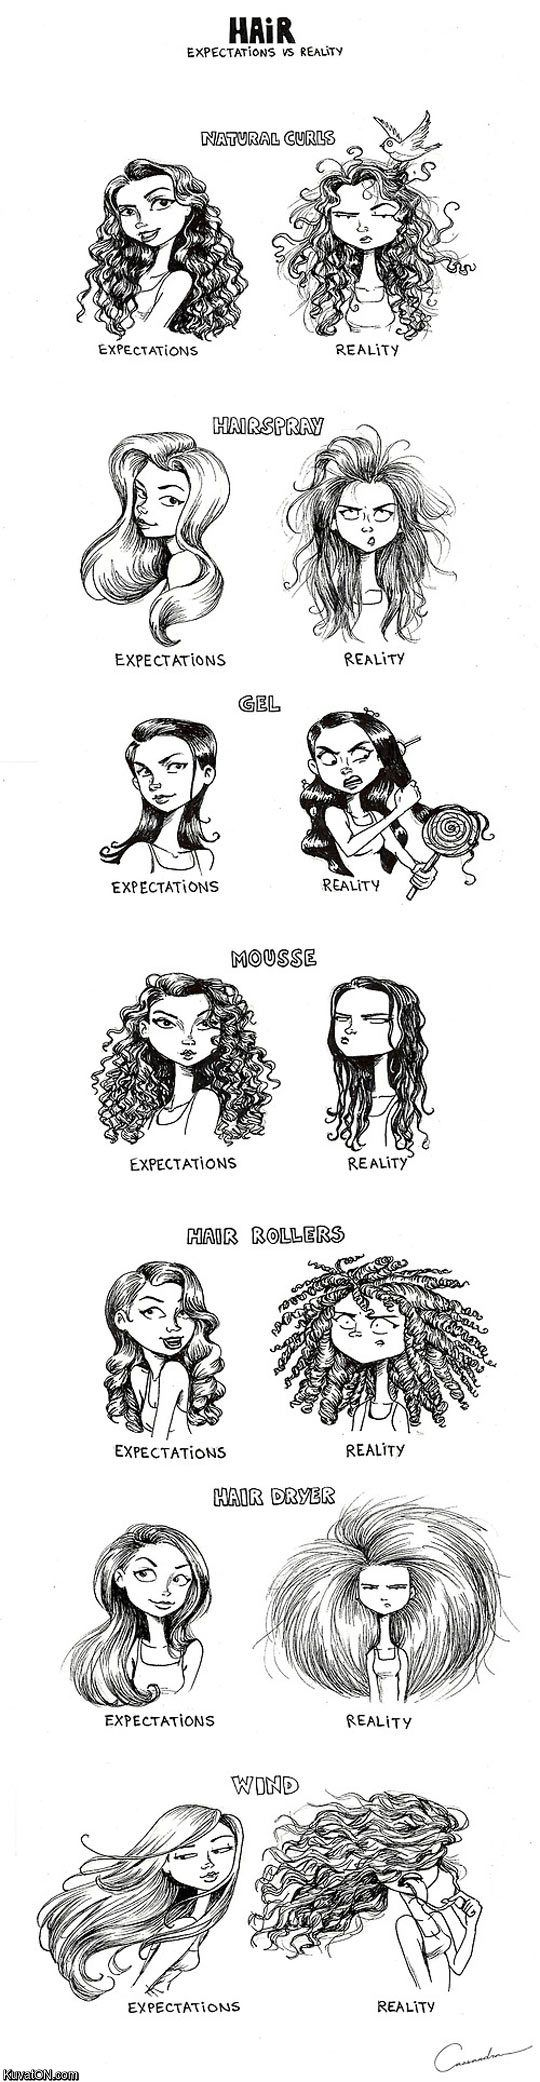 Expectations vs reality hairstyling